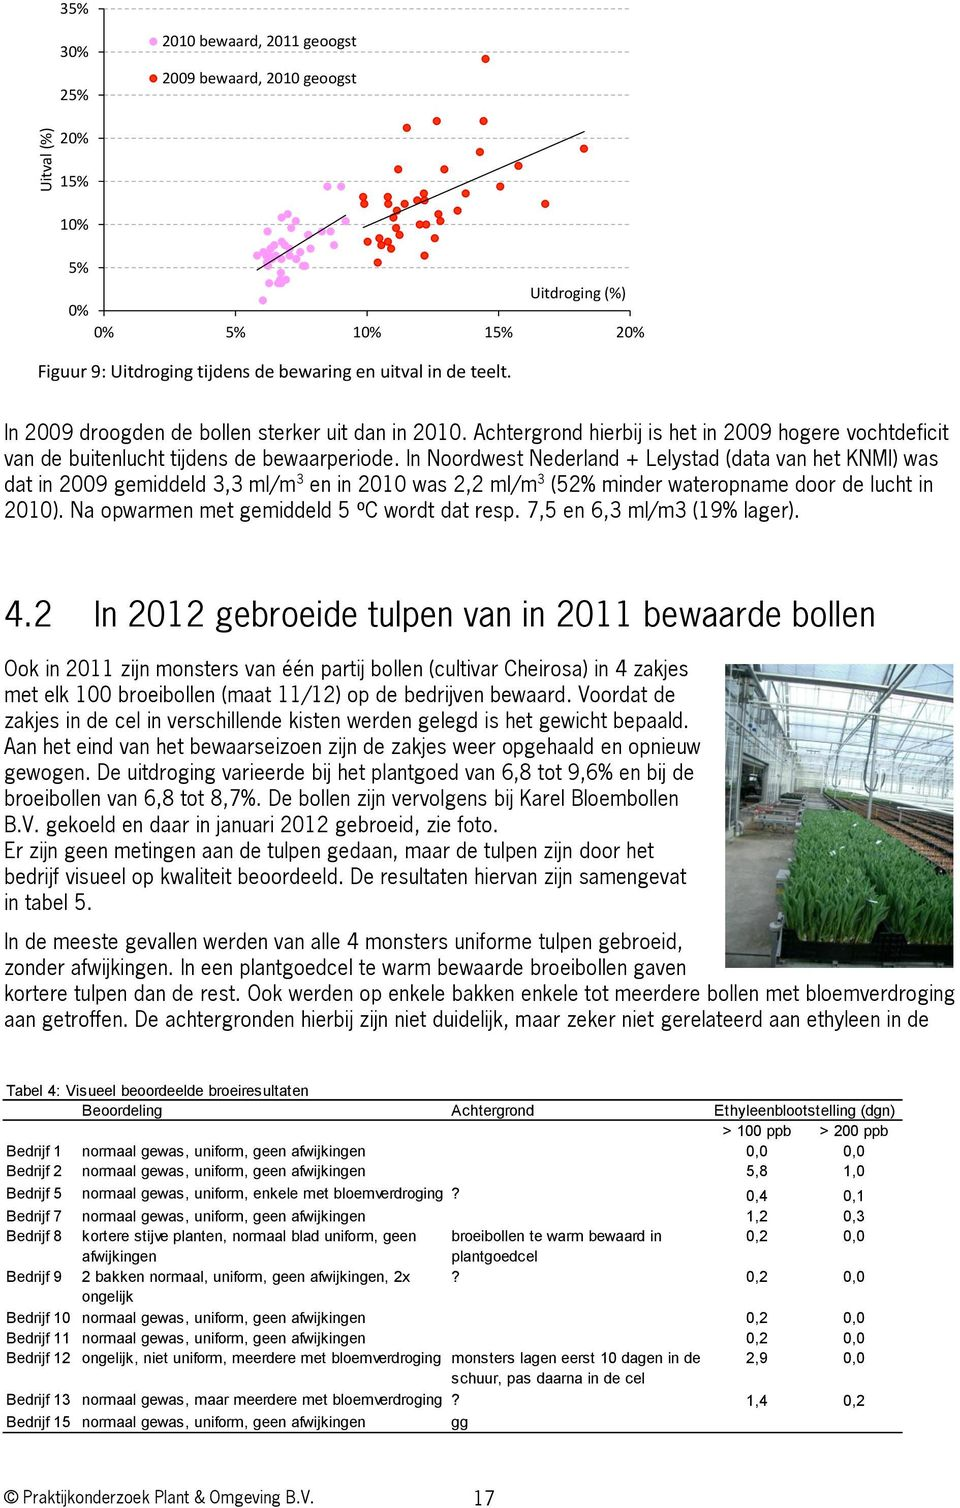 In Noordwest Nederland + Lelystad (data van het KNMI) was dat in 2009 gemiddeld 3,3 ml/m 3 en in 2010 was 2,2 ml/m 3 (52% minder wateropname door de lucht in 2010).